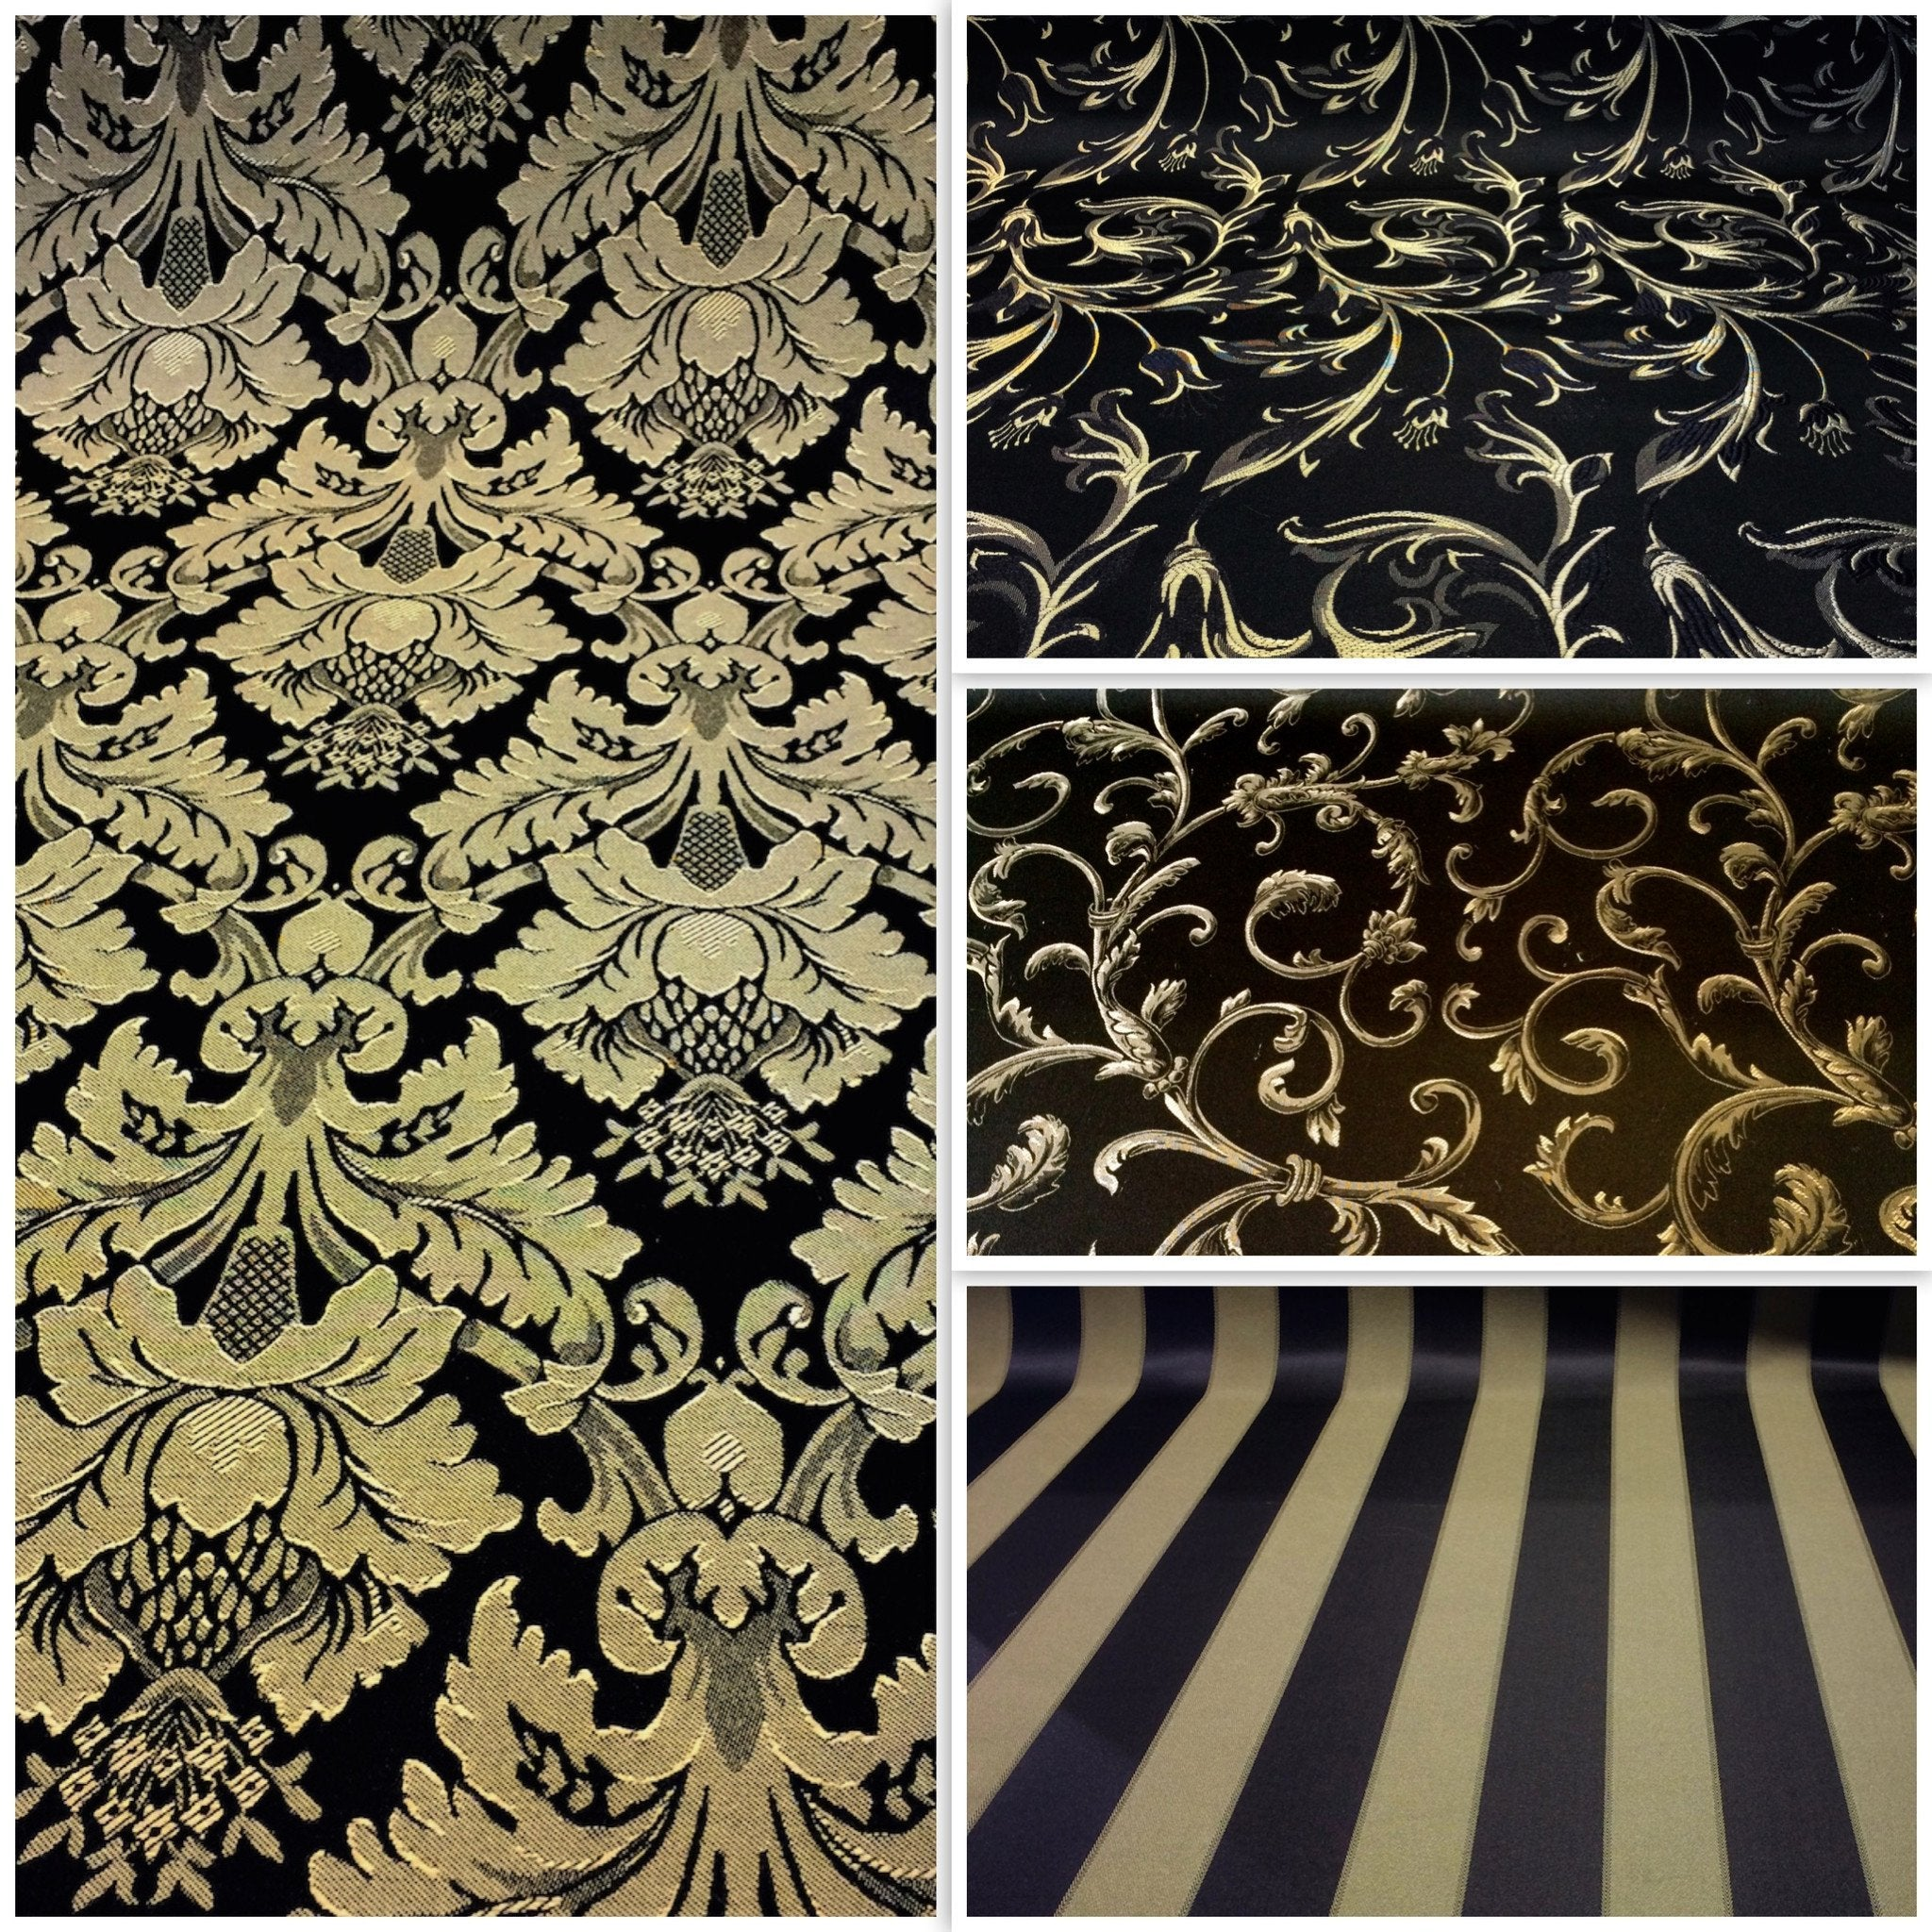 Jacquard Damask Fabric Wide Wholesale Discounts All Colors - Black and gold stripe drapery fabric